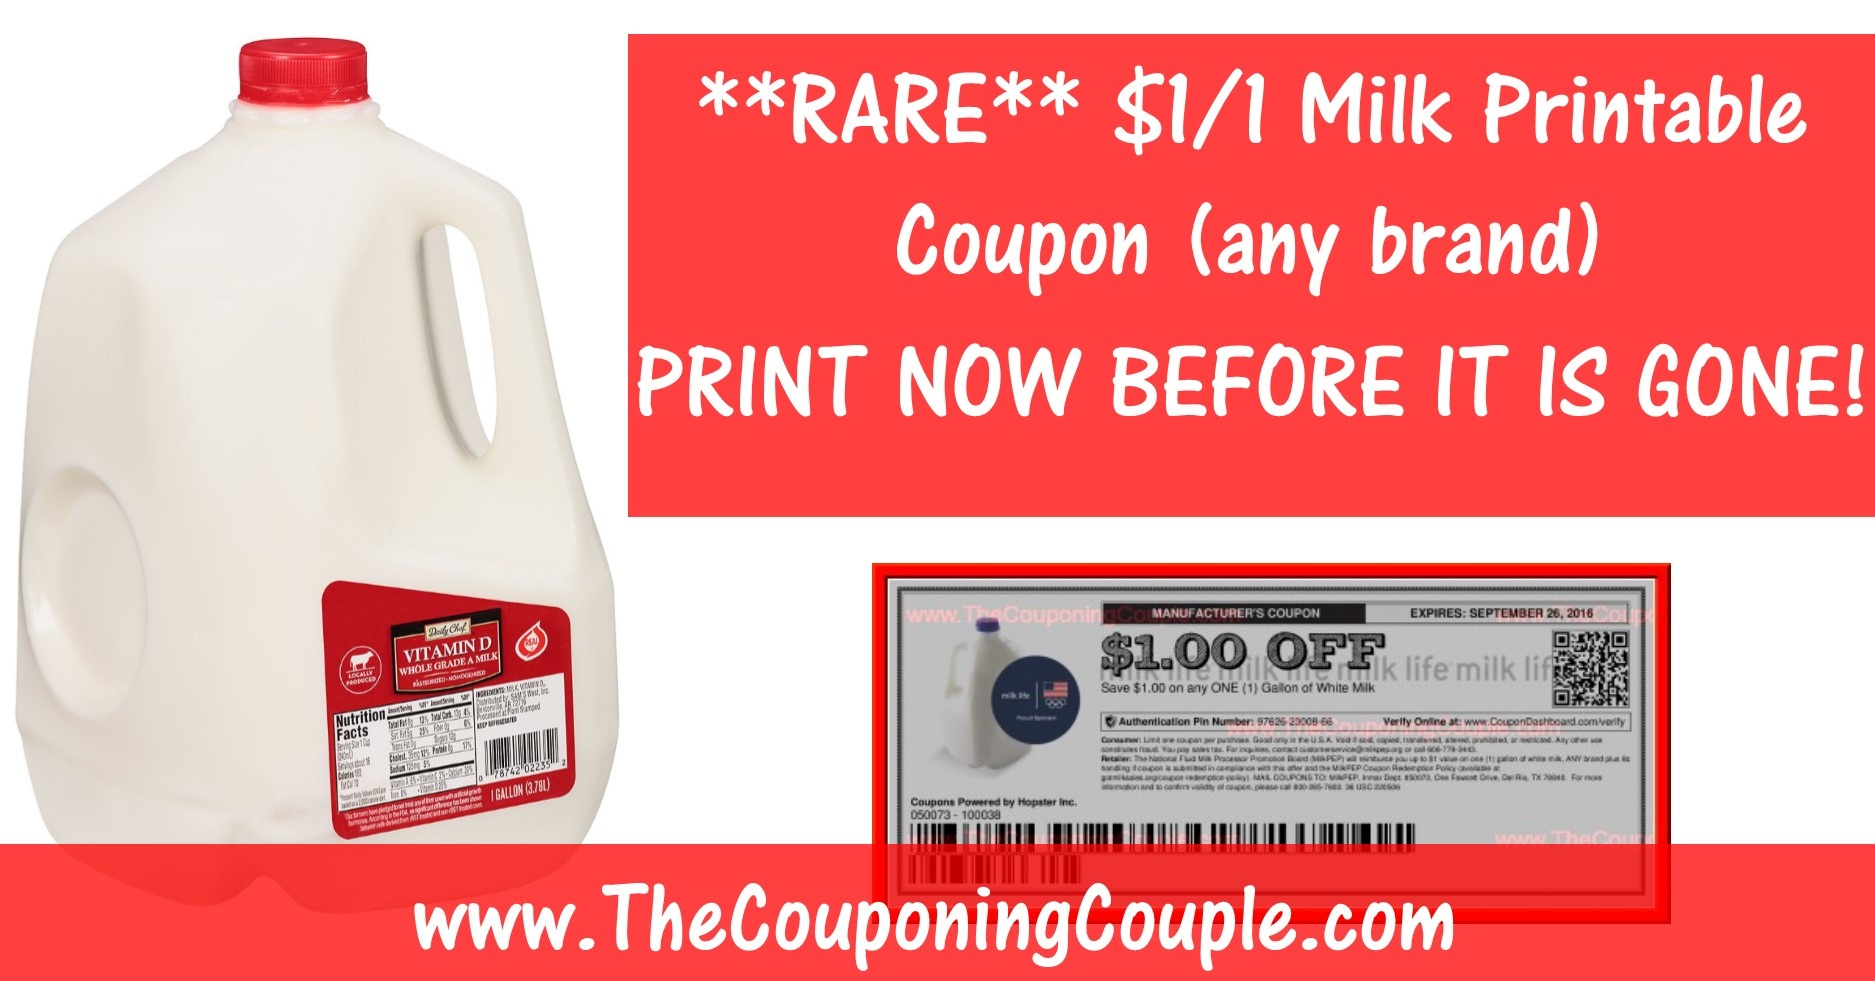 Rare Milk Printable Coupon ~ Save $1.00/1 Gallon Any Brand! - Free Milk Coupons Printable